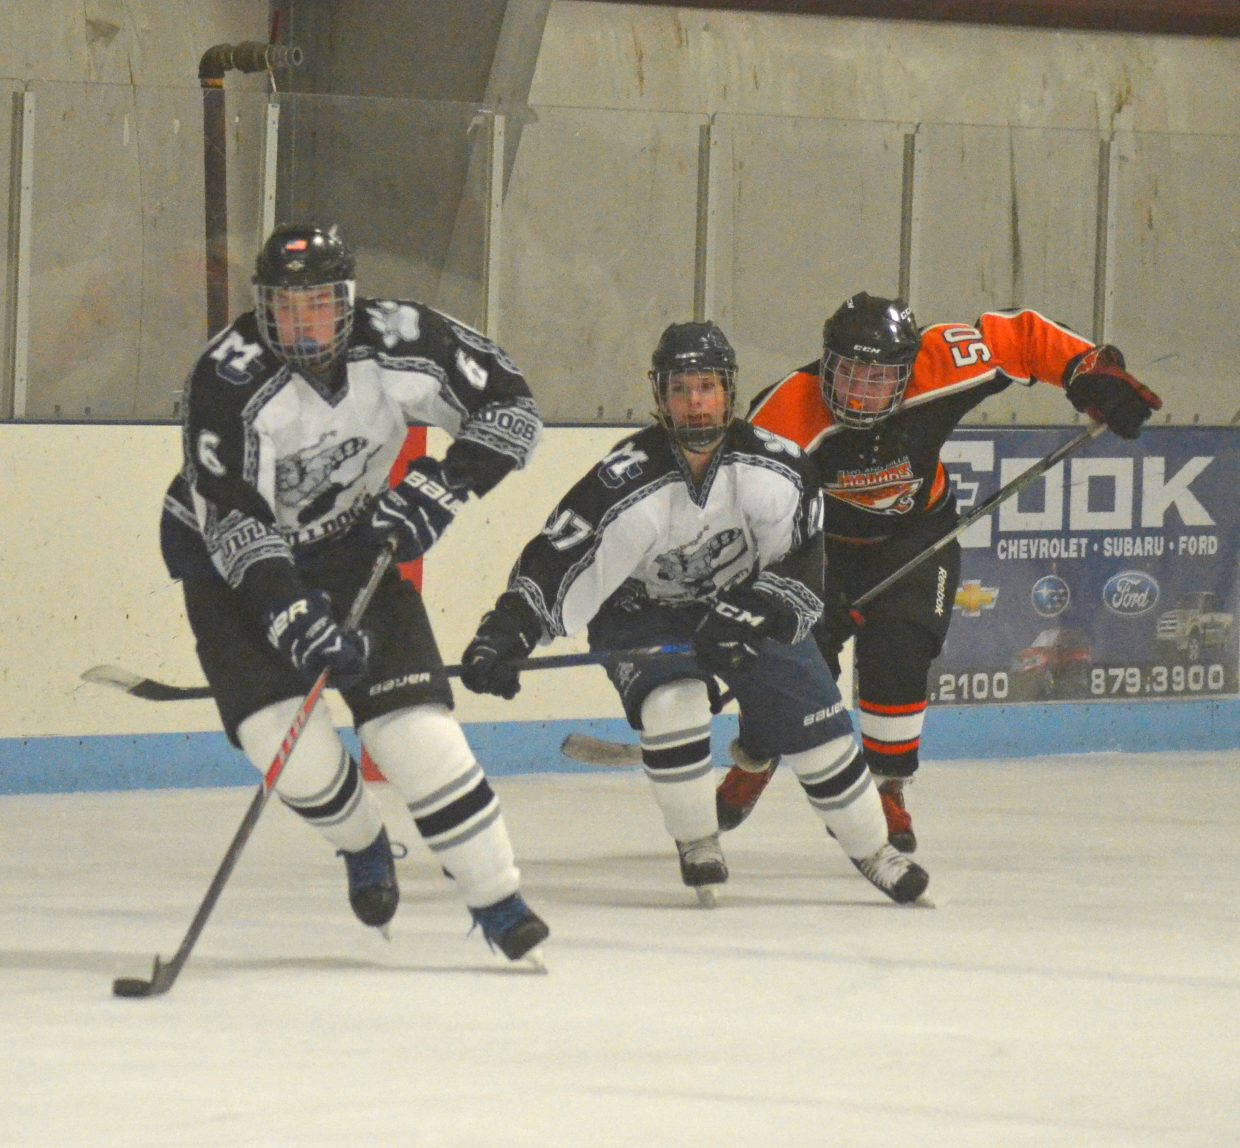 Brayden Tuttle (6) is on the approach to score, while teammate Kaitlyn Shrode (47) has his back in the Craig Youth Hockey Association 18U Midget team's game against the Hyland Hills Jaguars.